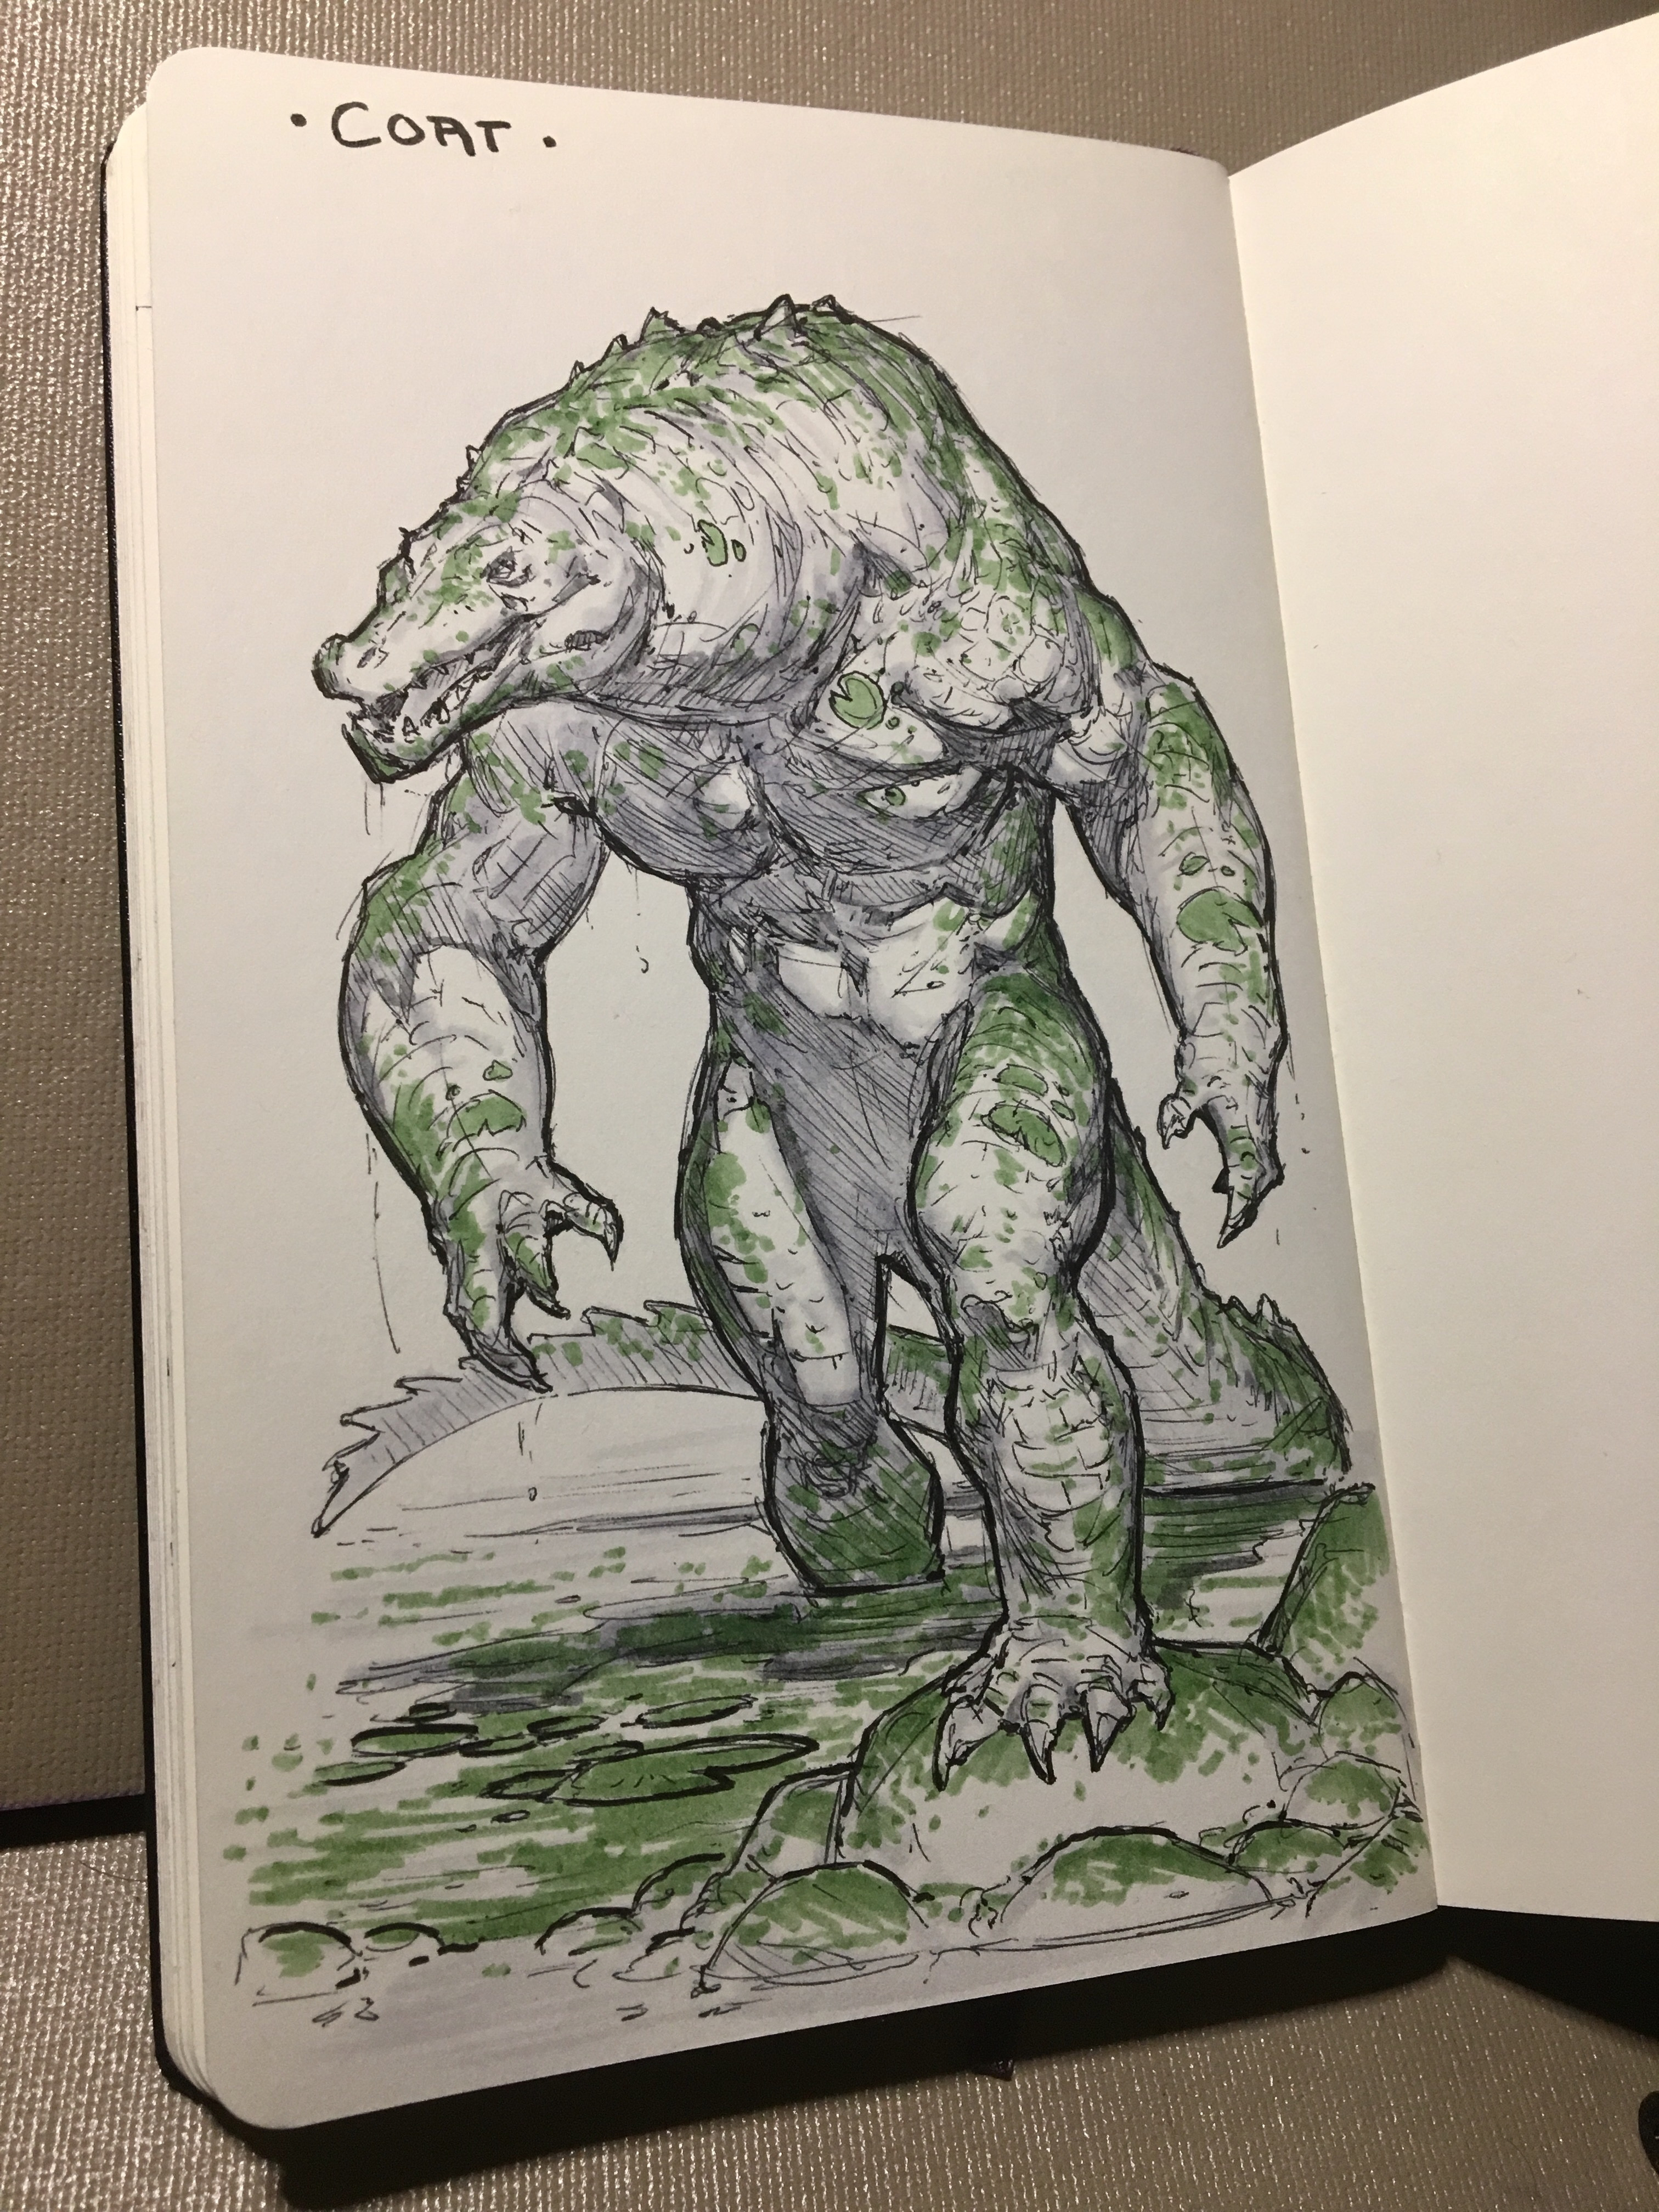 Day 27 of inktober 2019! Coat! He's lean, he's mean and he's... covered in green? Algae... it gets everywhere. 😅